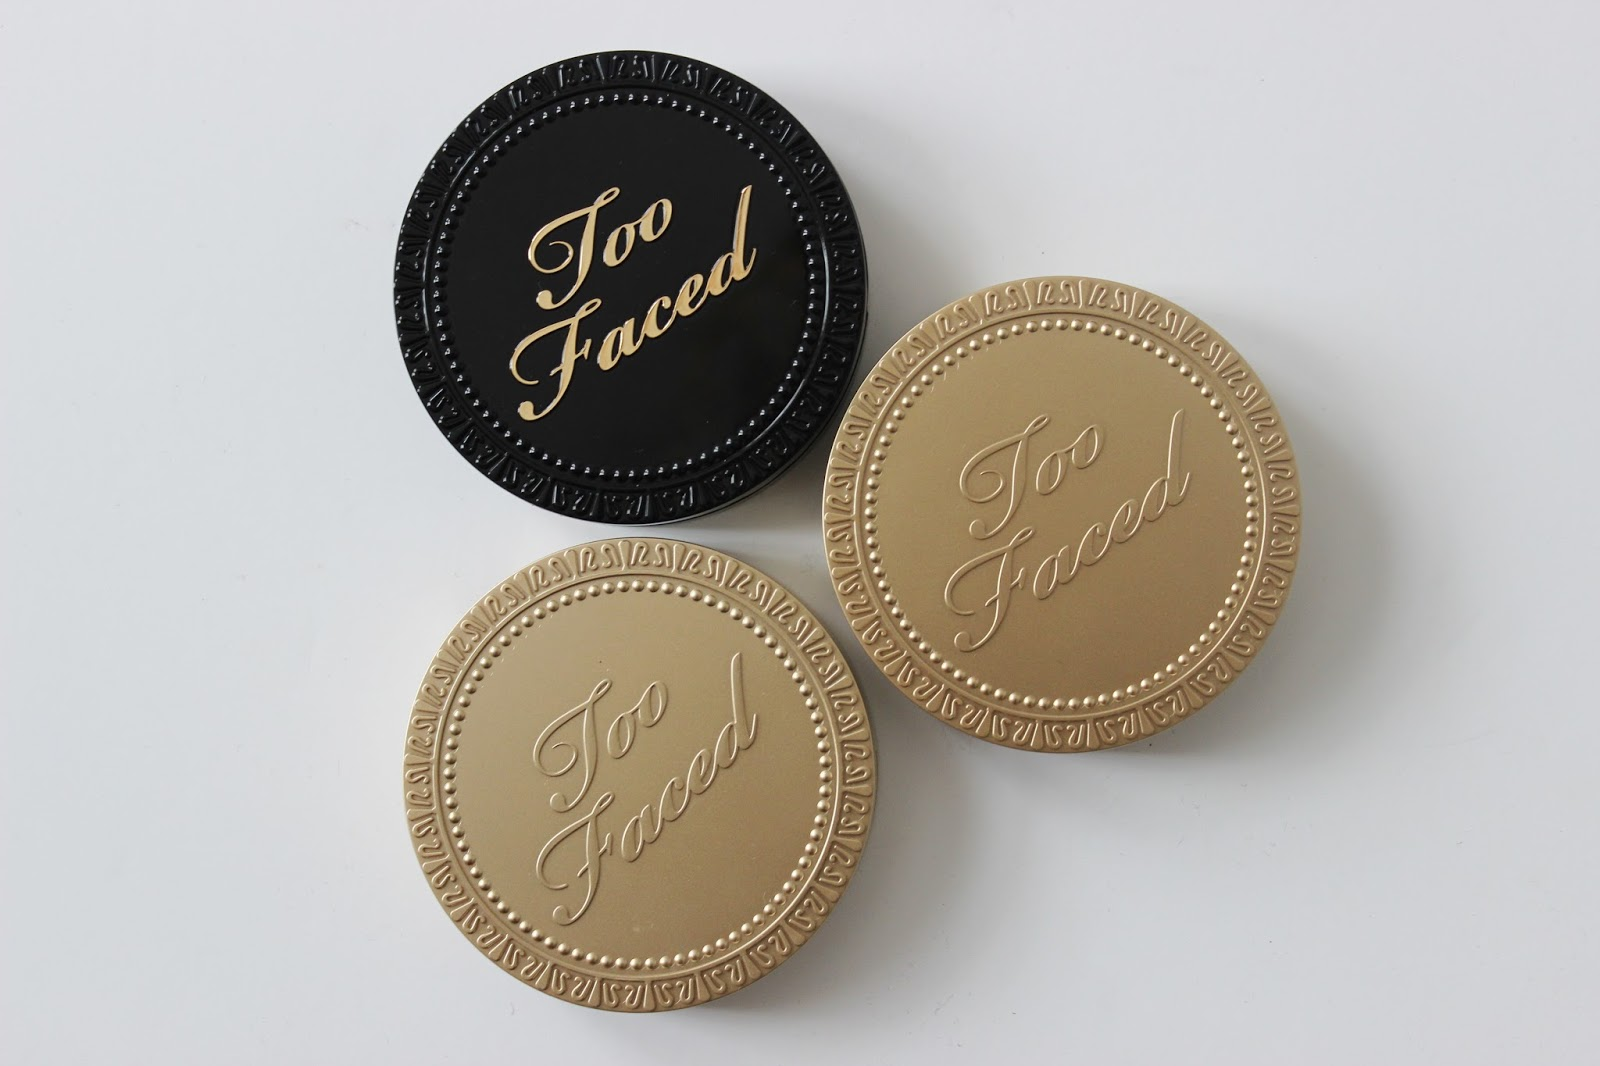 Too Faced cocoa powder foundation and soleil chocolate bronzers compacts